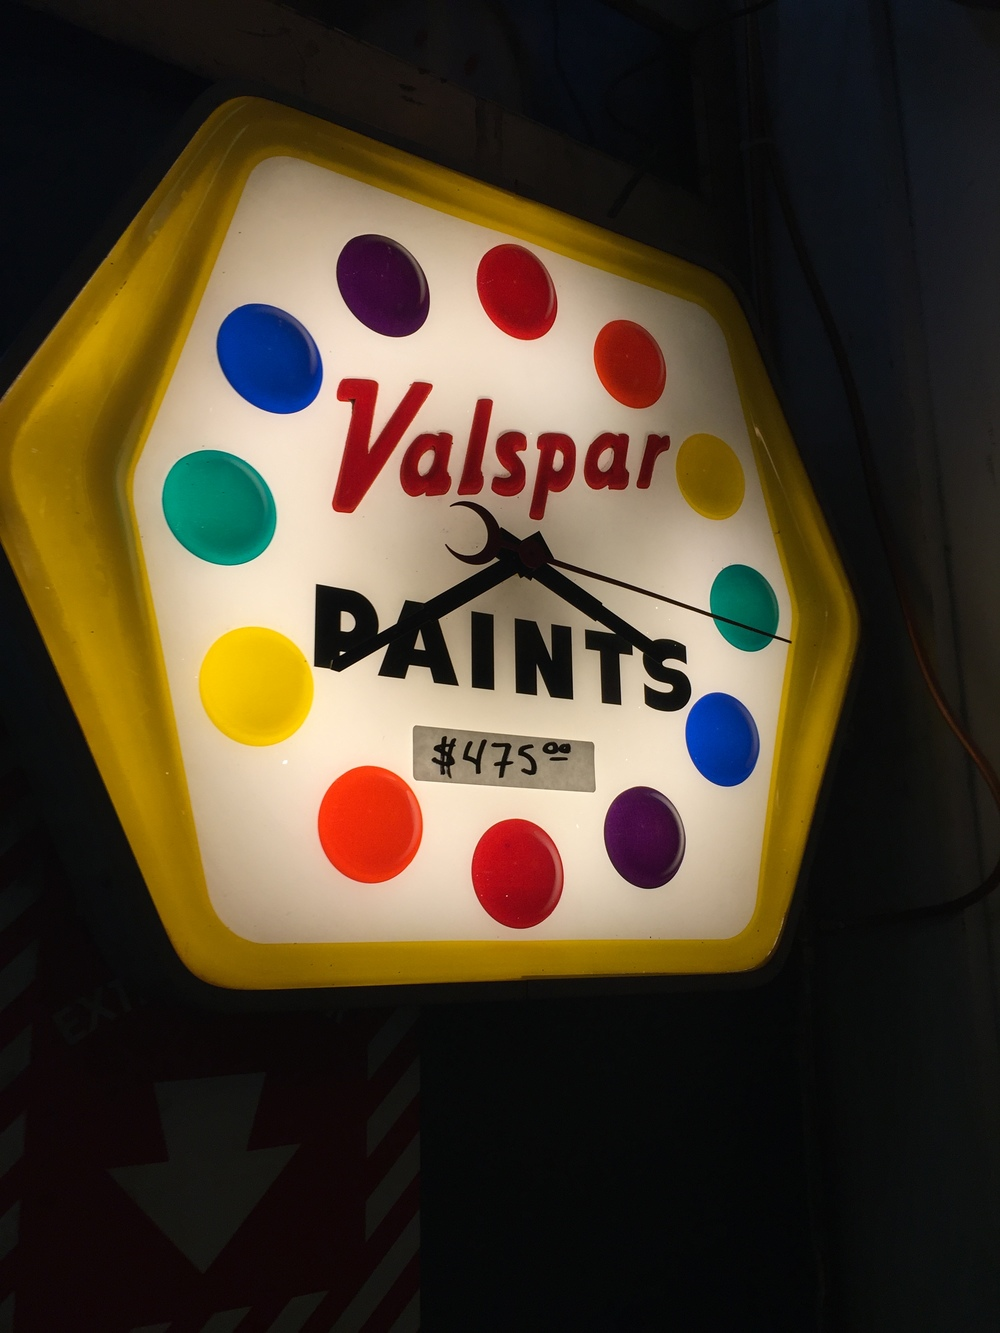 Valspar Paints Clock.JPG